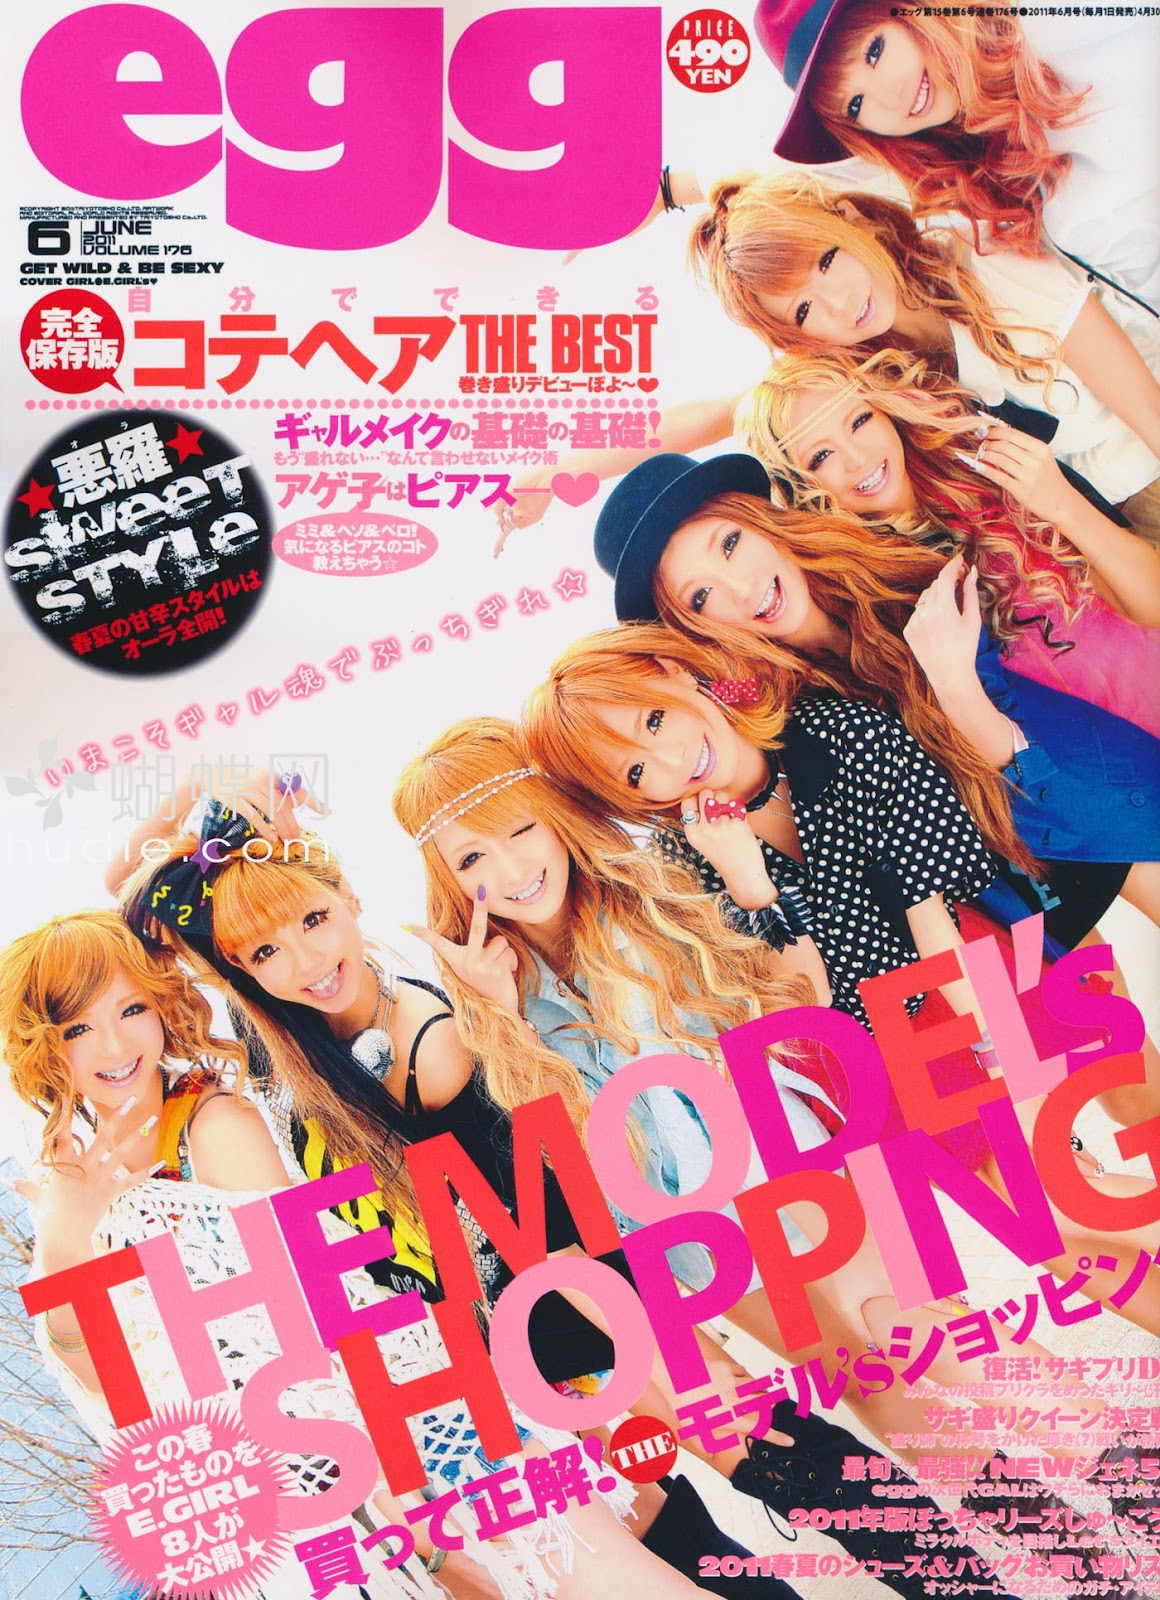 egg june 2011 gyaru magazine scans